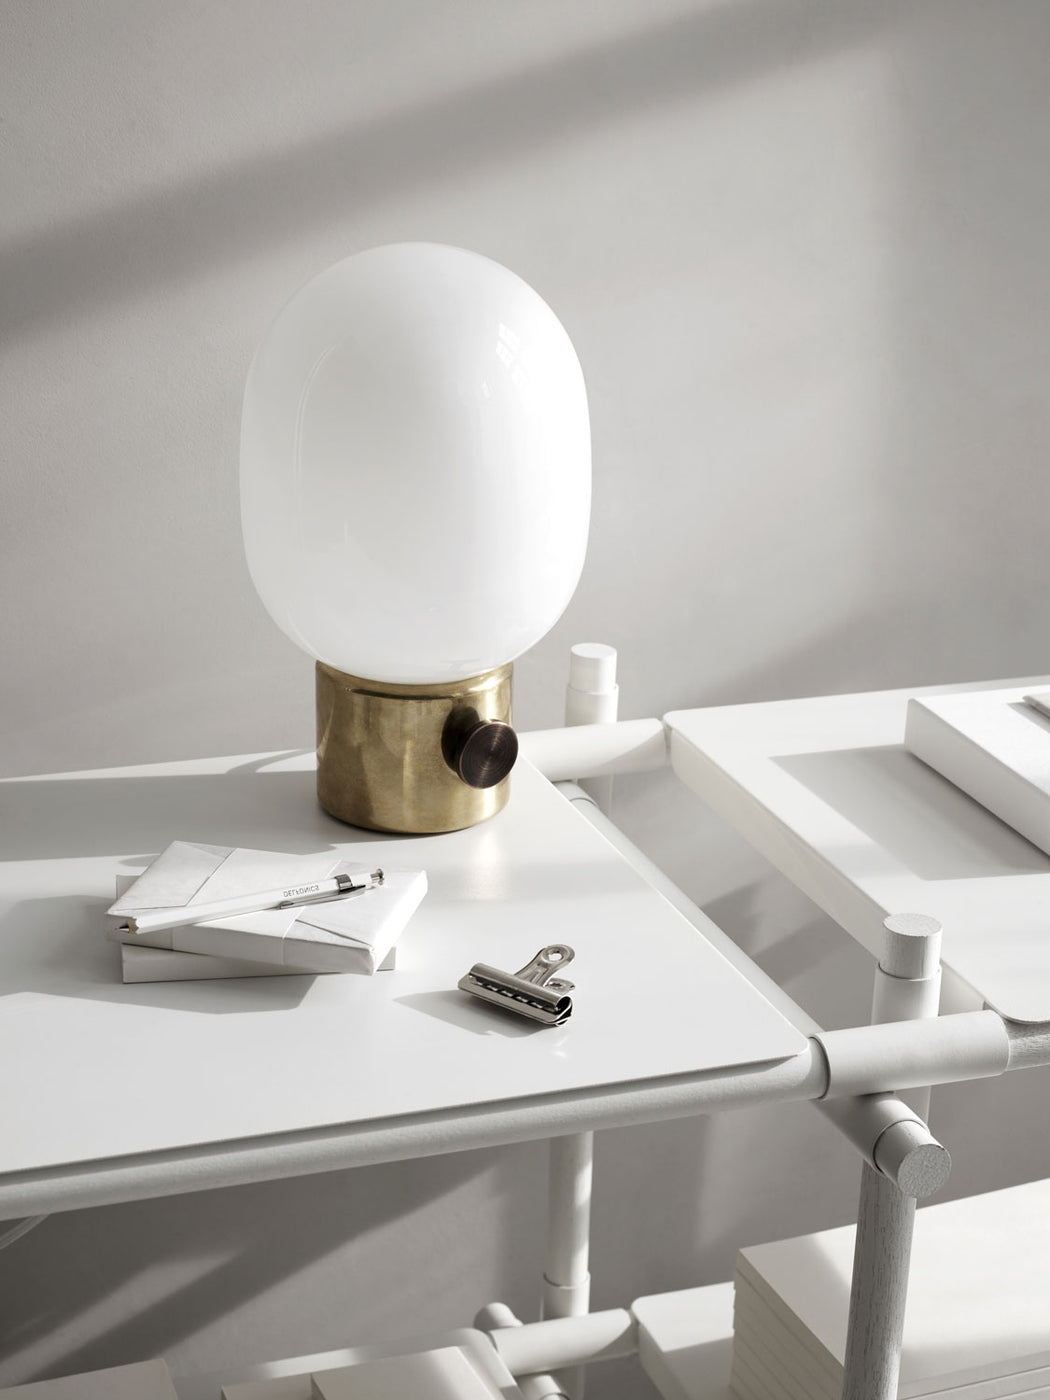 Jwda Table Lamp, Lifestyle